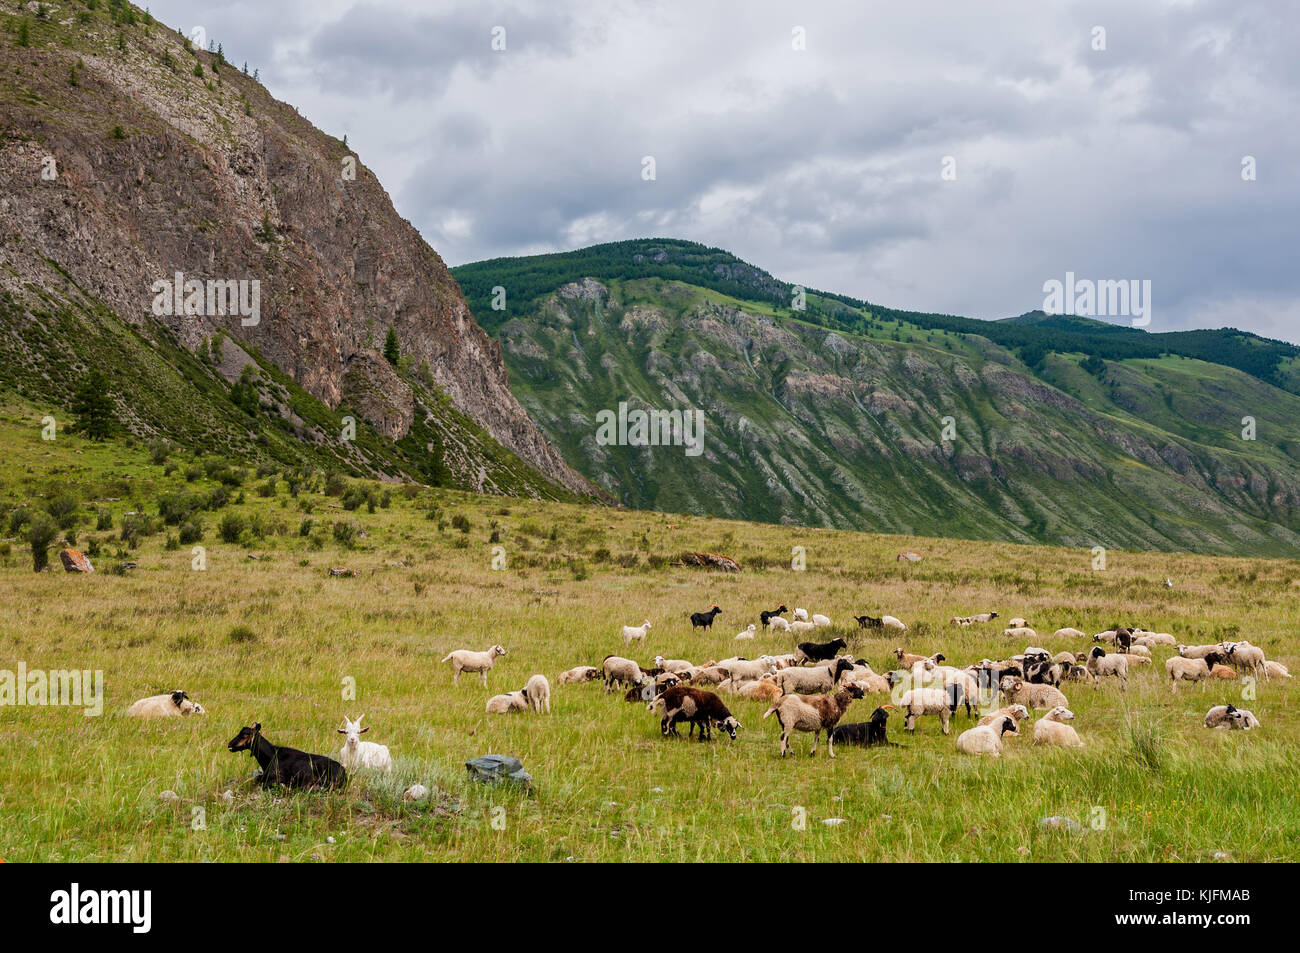 A herd of sheep and goats grazing in a meadow in the mountains on a cloudy day - Stock Image